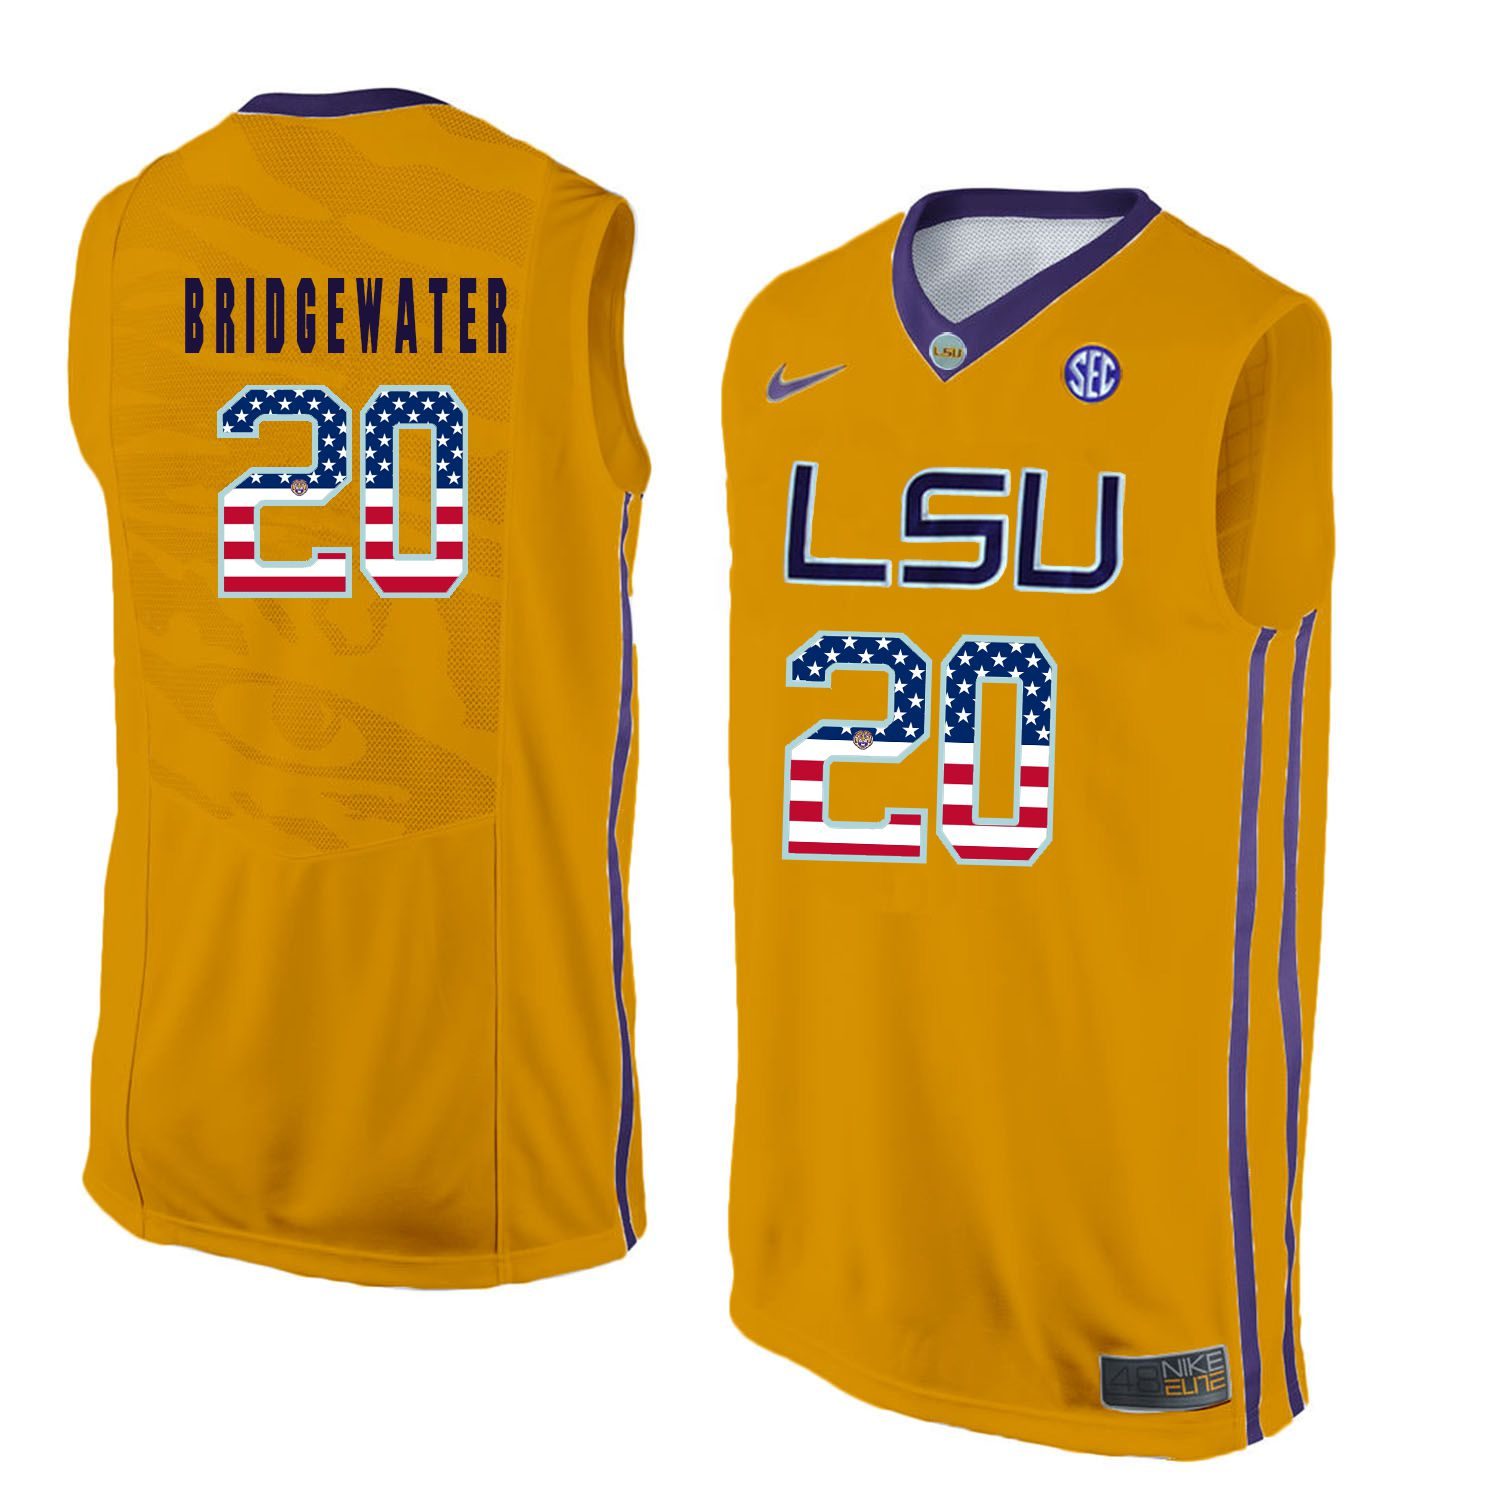 Men LSU Tigers 20 Bridgewater Yellow Flag Customized NCAA Jerseys